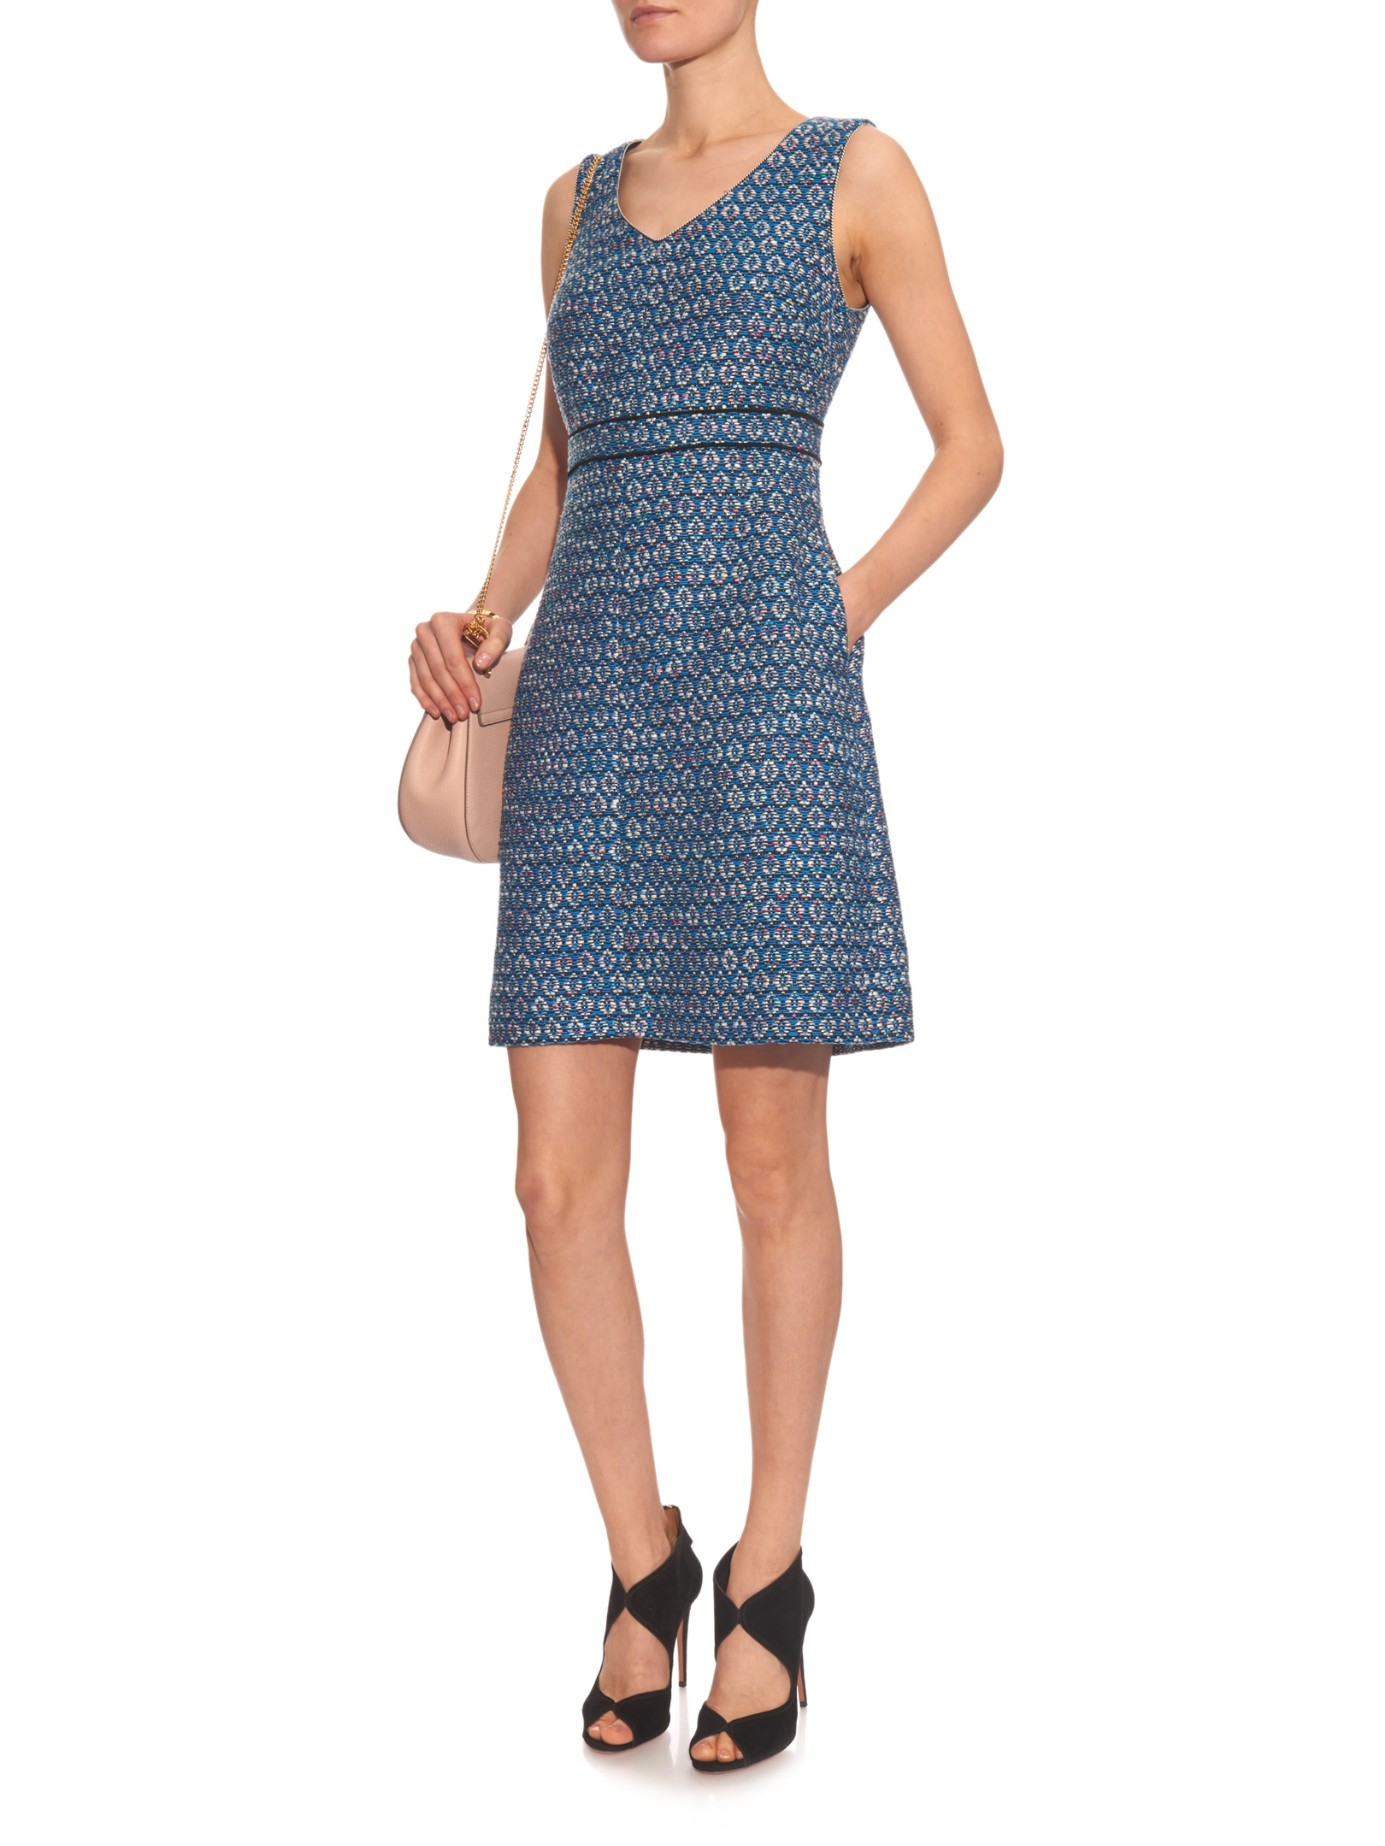 Lyst diane von furstenberg leelou long dress in blue for Diane von furstenberg clothes